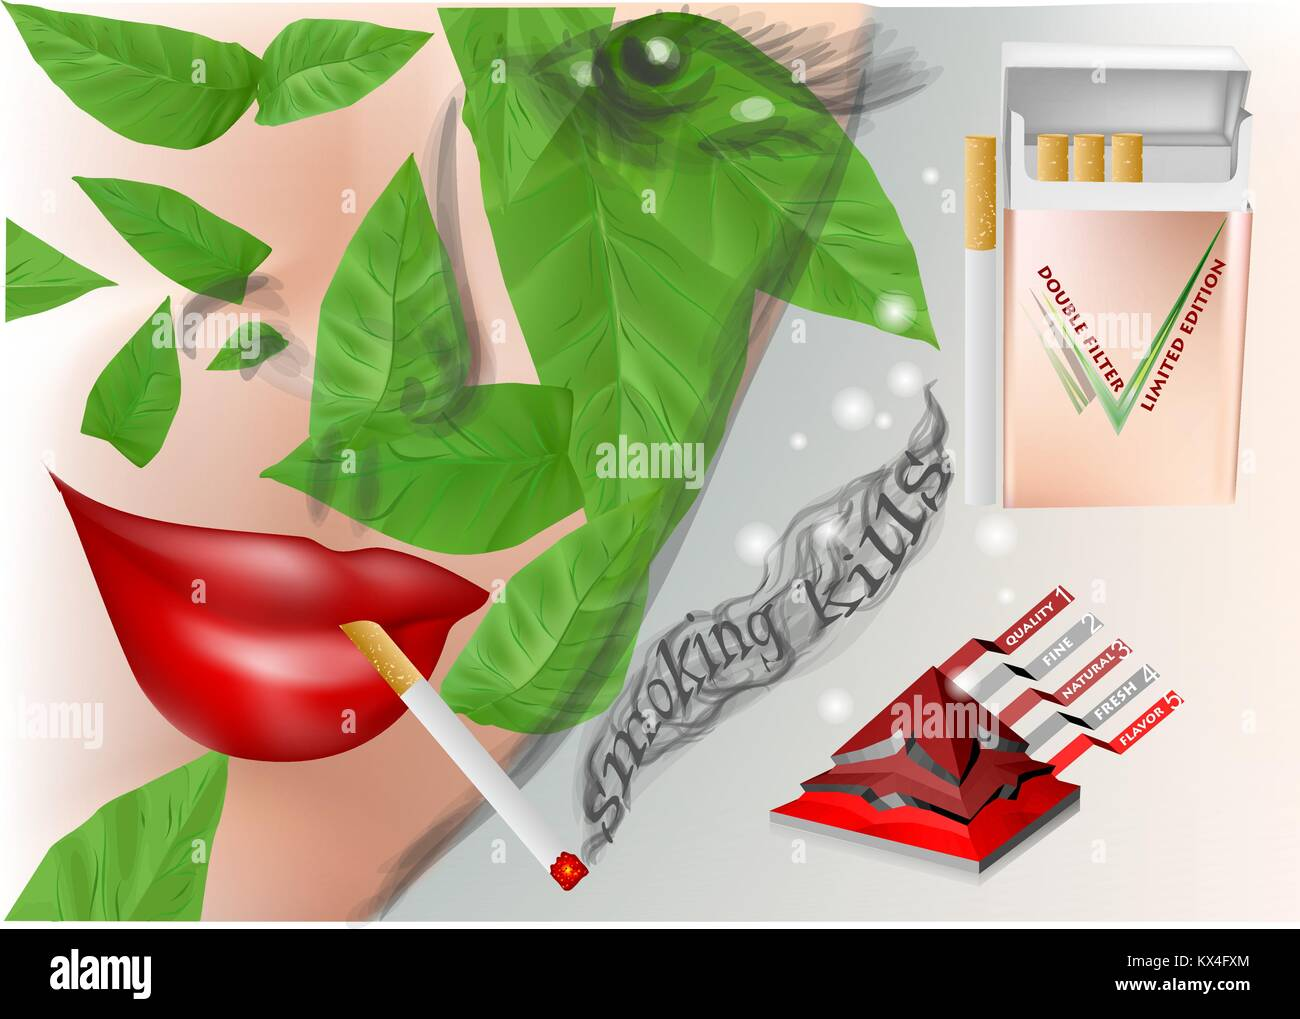 anti-tobacco advertising. woman with cigarette and tobacco leaves - Stock Vector